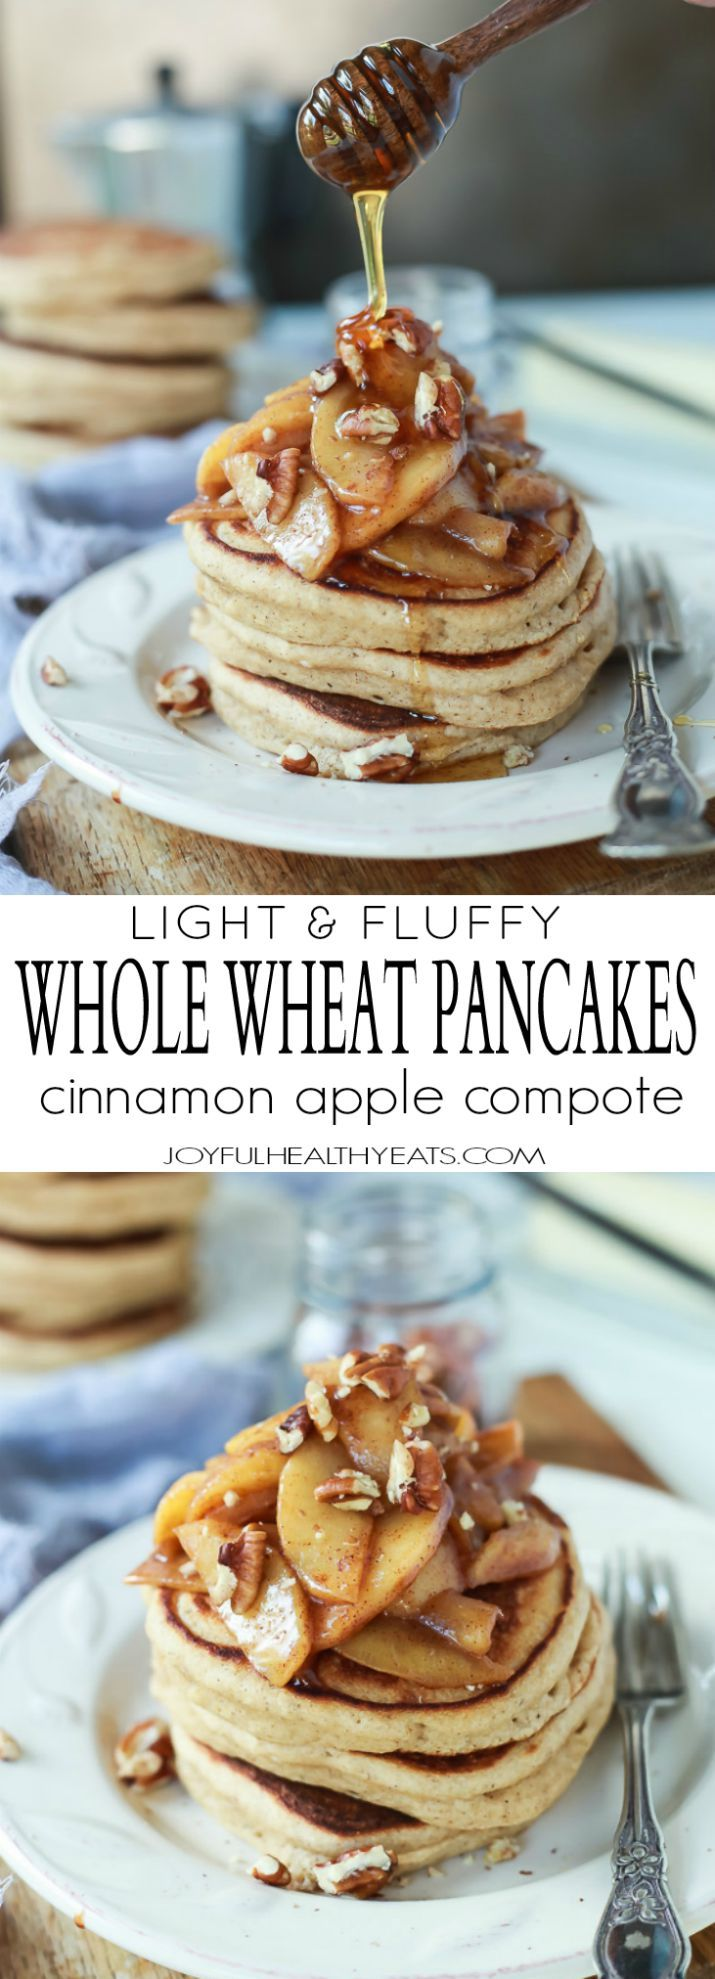 Fluffy Whole Wheat Pancakes made with a few secret ingredients, top with a Cinnamon Apple Compote that's made with honey instead of brown sugar for the grand finale!   joyfulhealthyeats.com